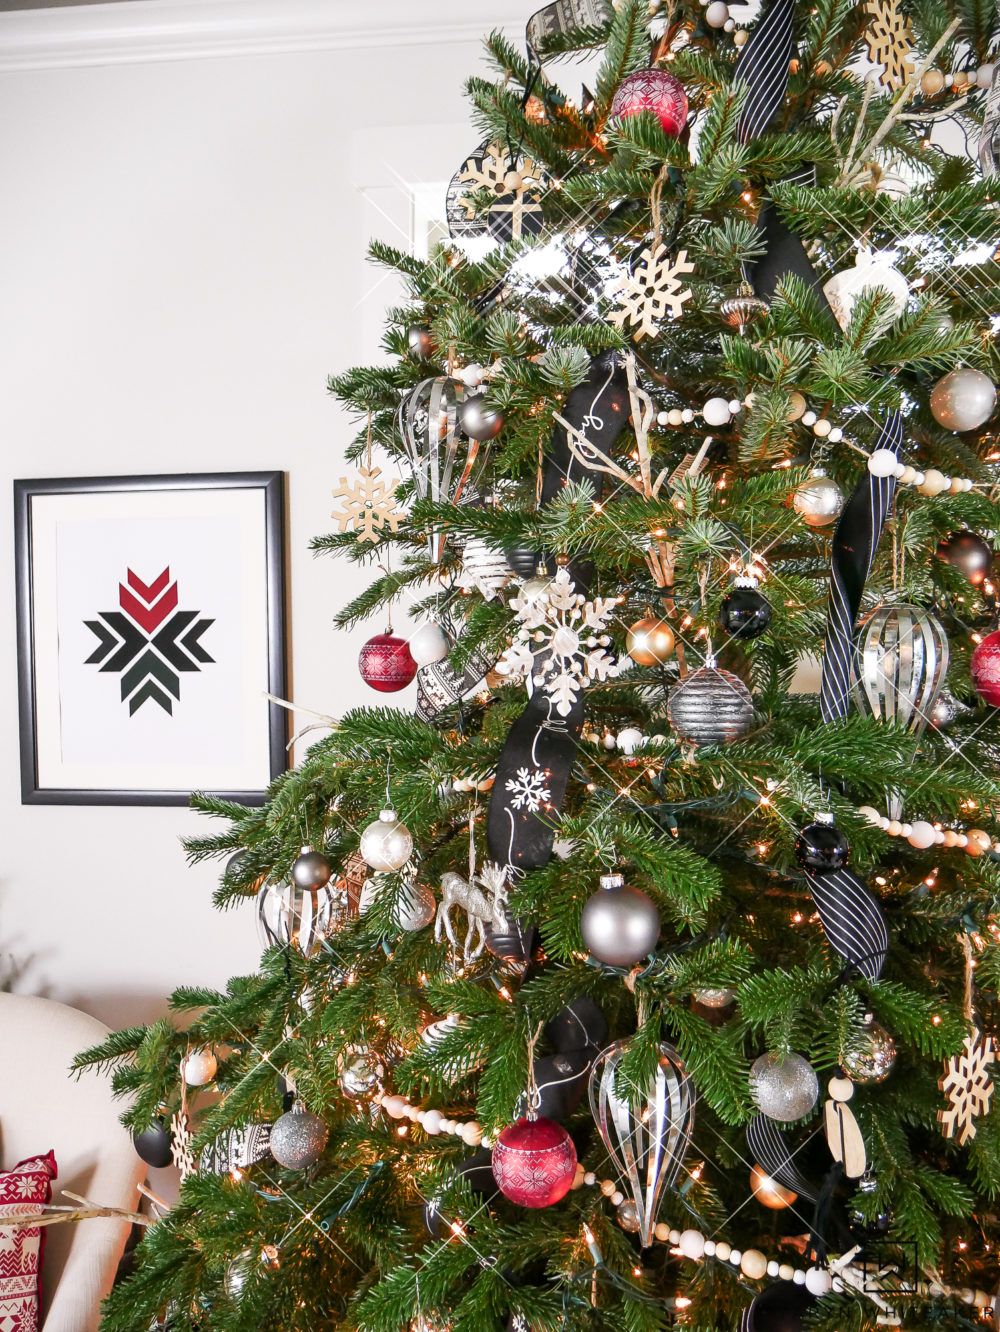 Woodland Chic Christmas Tree Decor in Red, black and white! Such a fun mixture of ornaments!